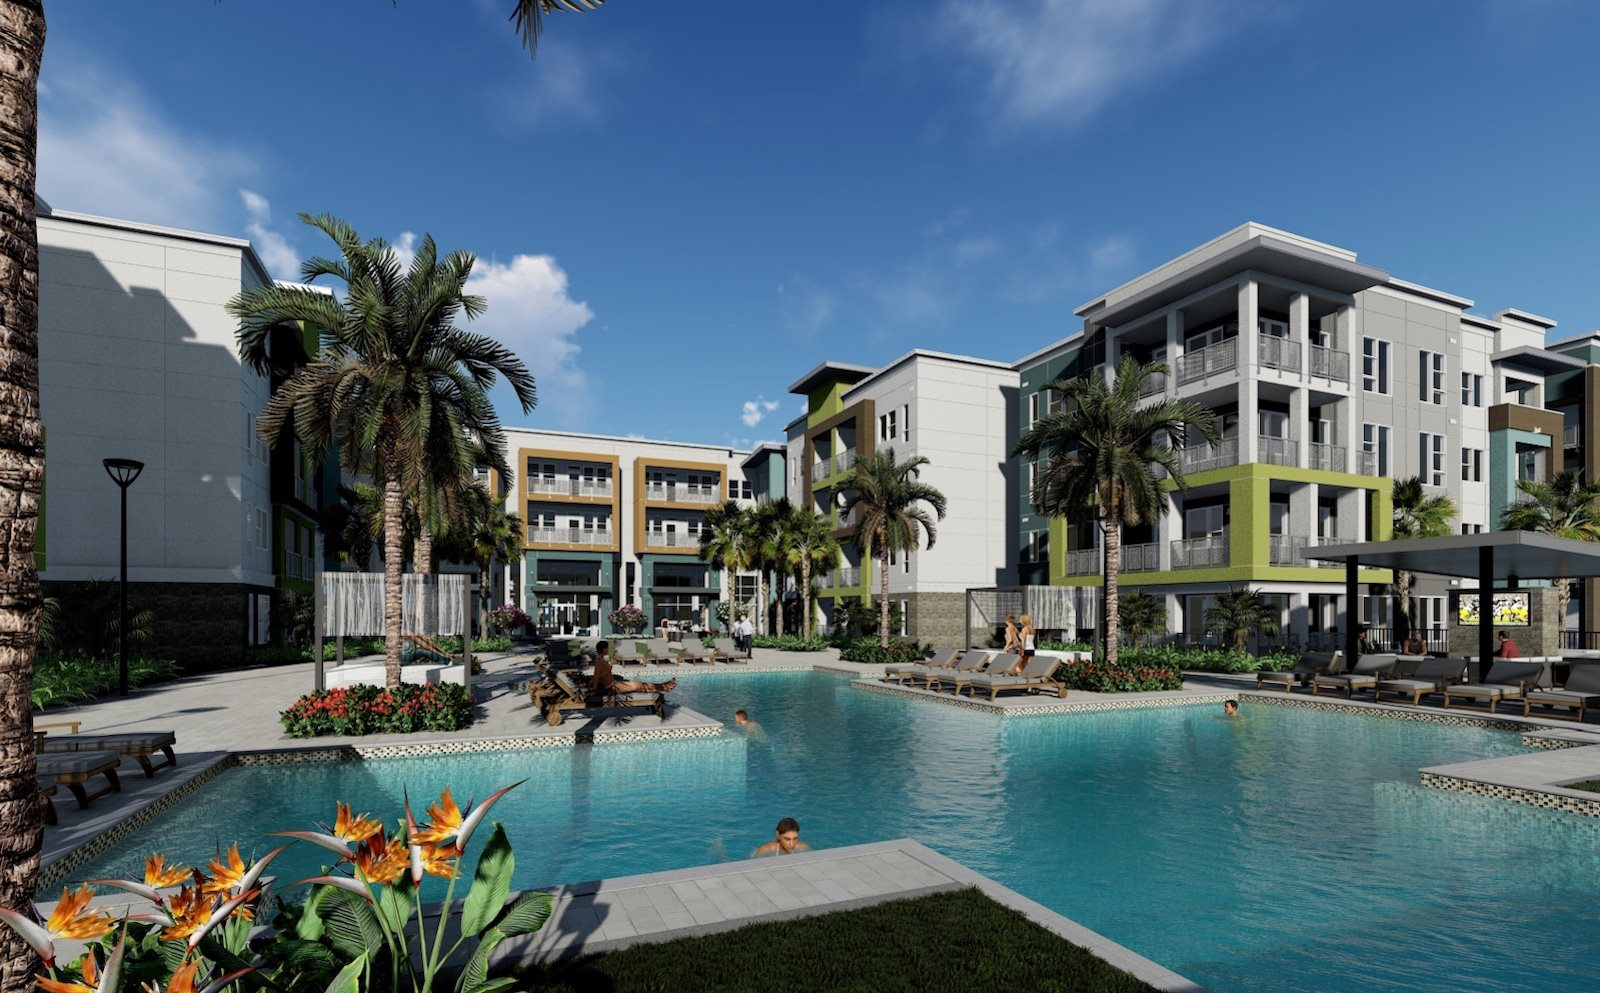 Residences at The Green Apartments in Lakewood Ranch, FL pool rendering